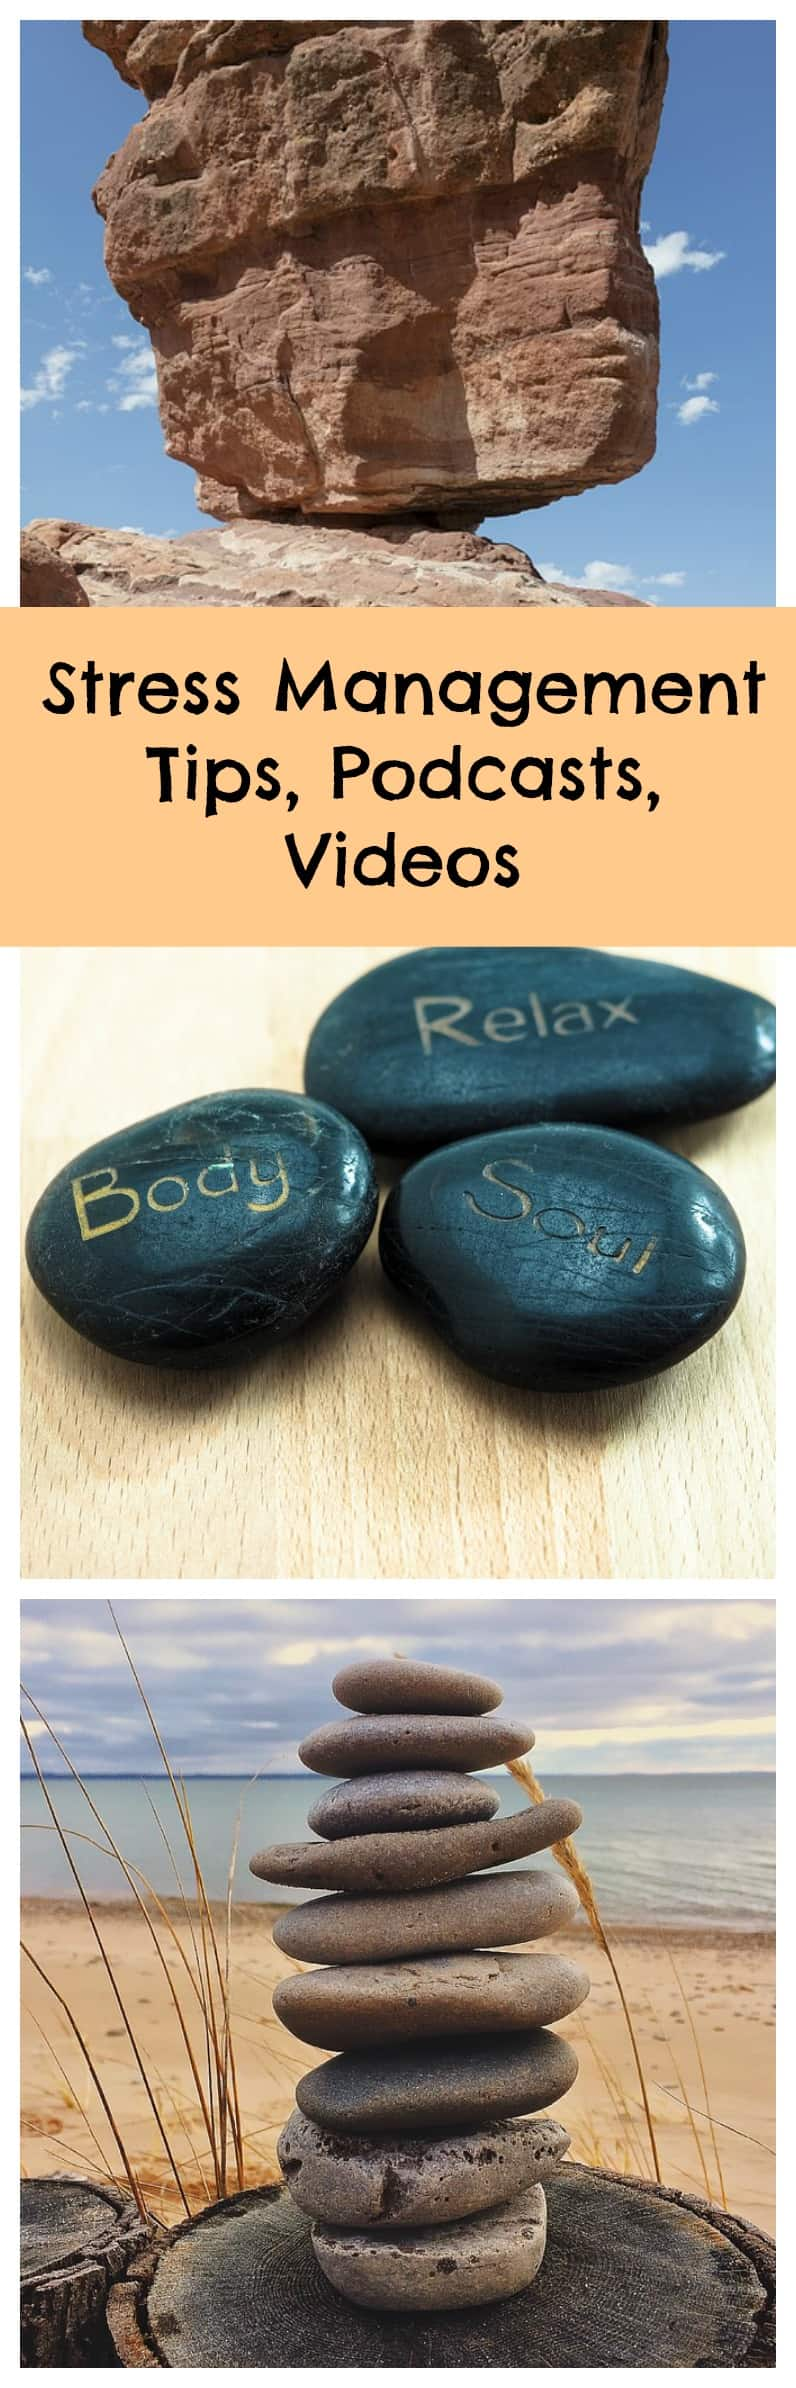 Stress Management @shawsimpleswaps Tips, Podcasts, Videos to help create a zenful state!